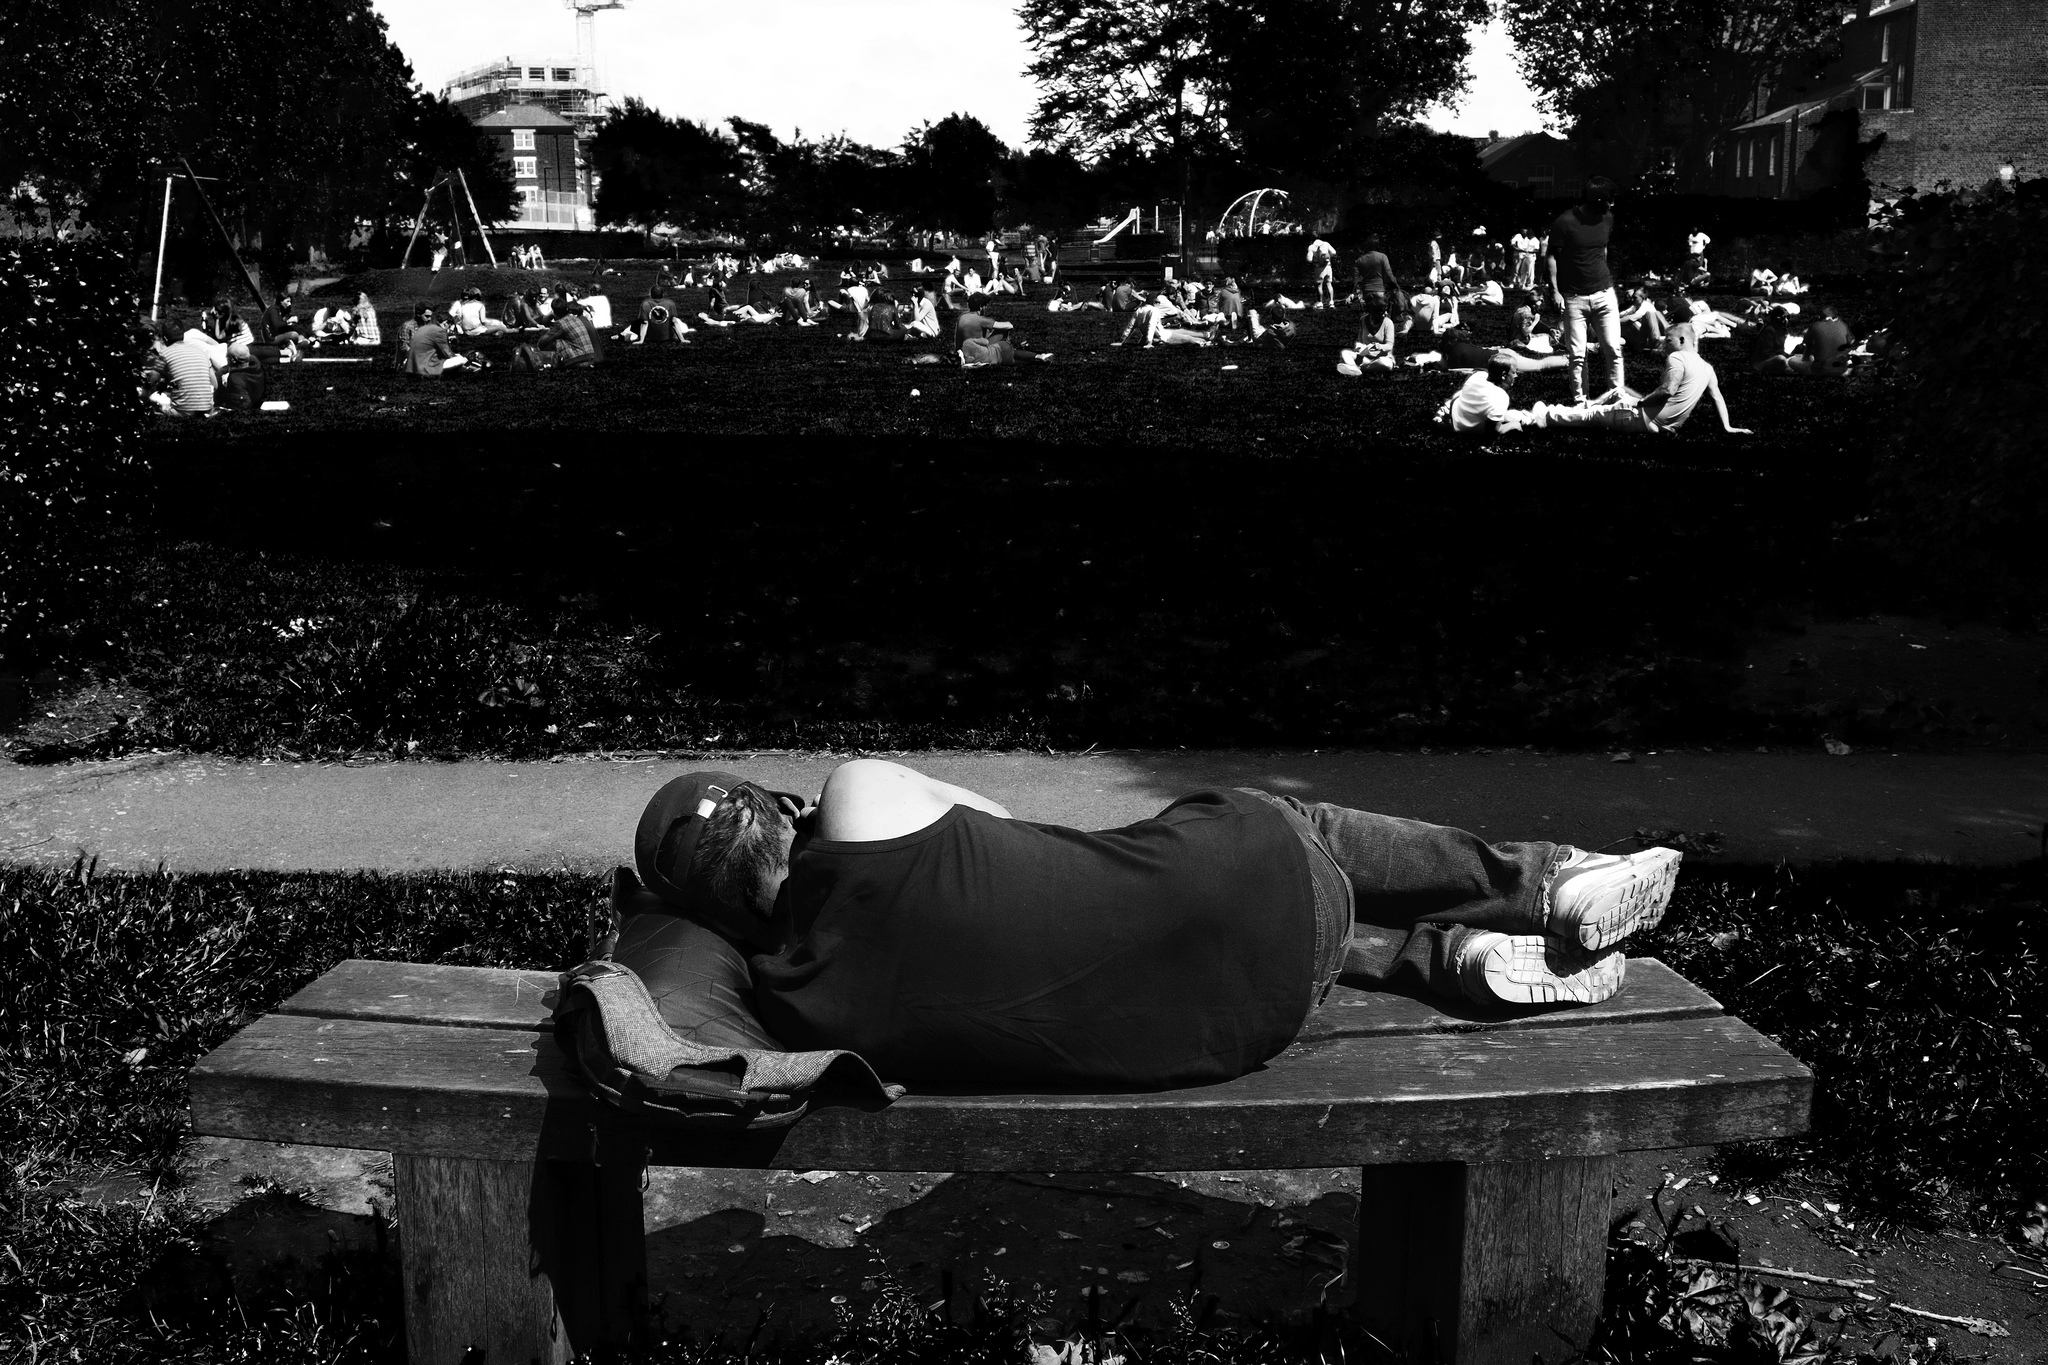 A man sleeps on a bench in a Shoreditch park.